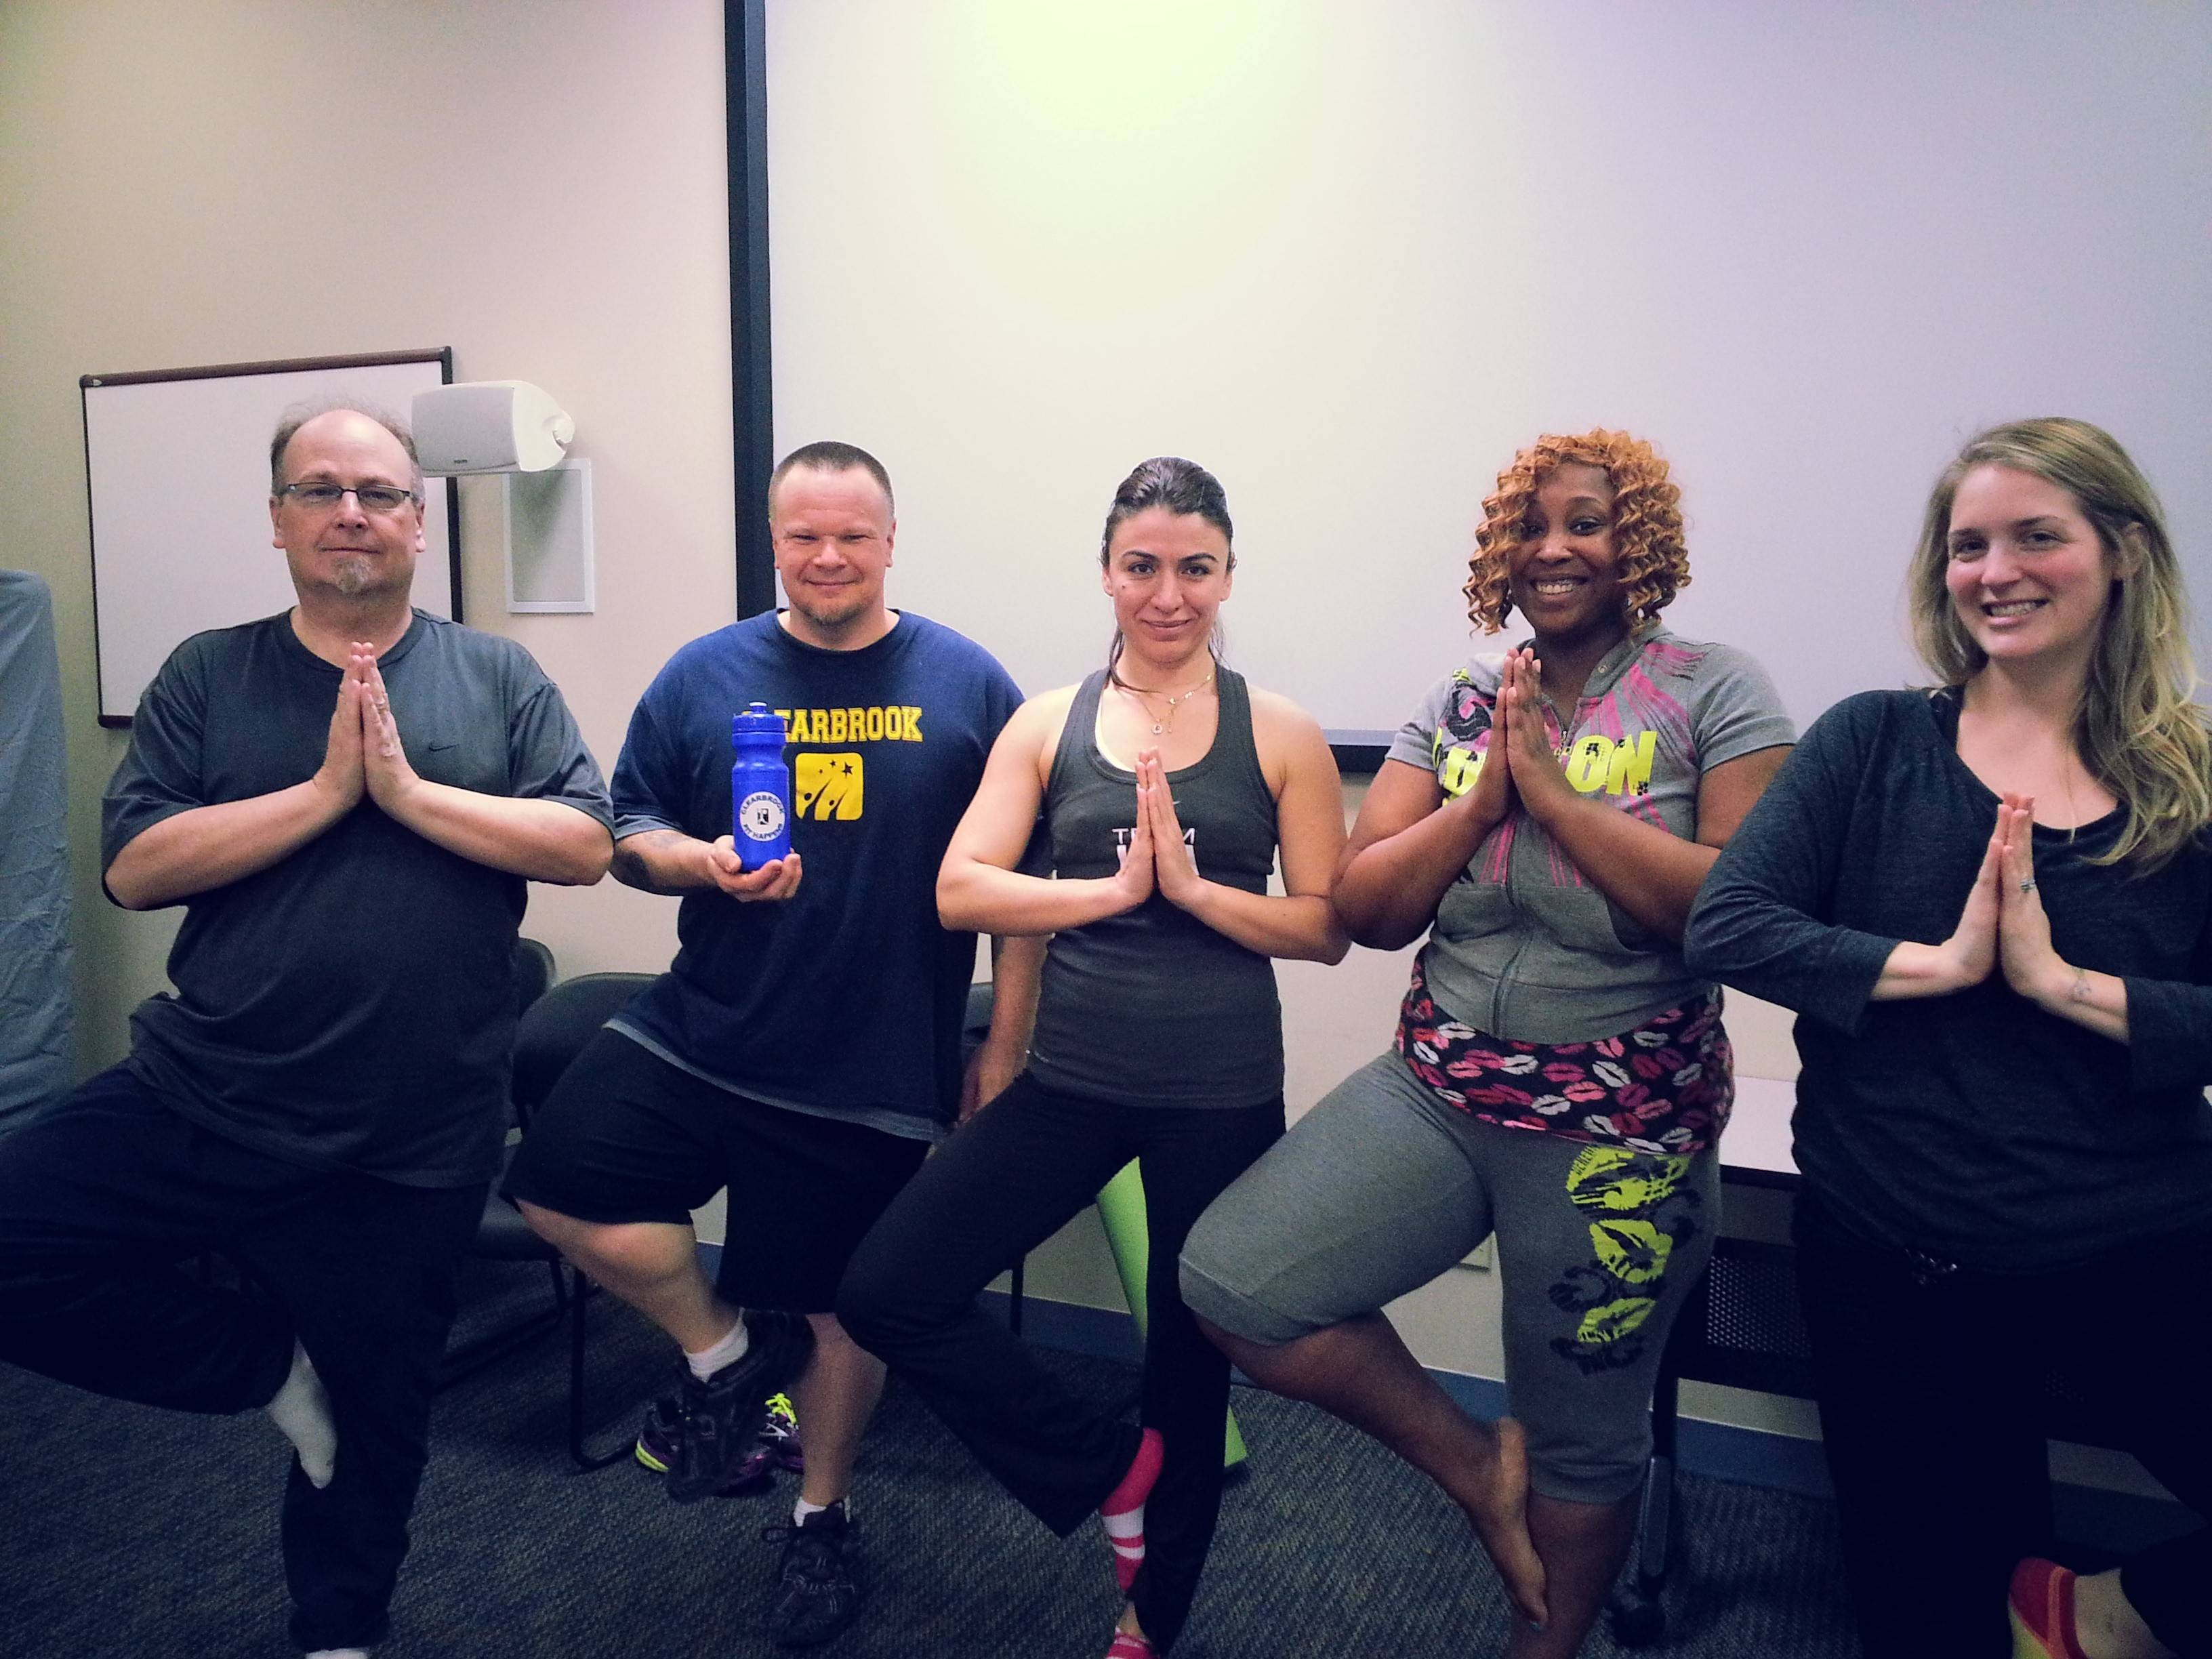 Clearbrook's Fit Happens team took advantage of the yoga instructor provided by Assurance.